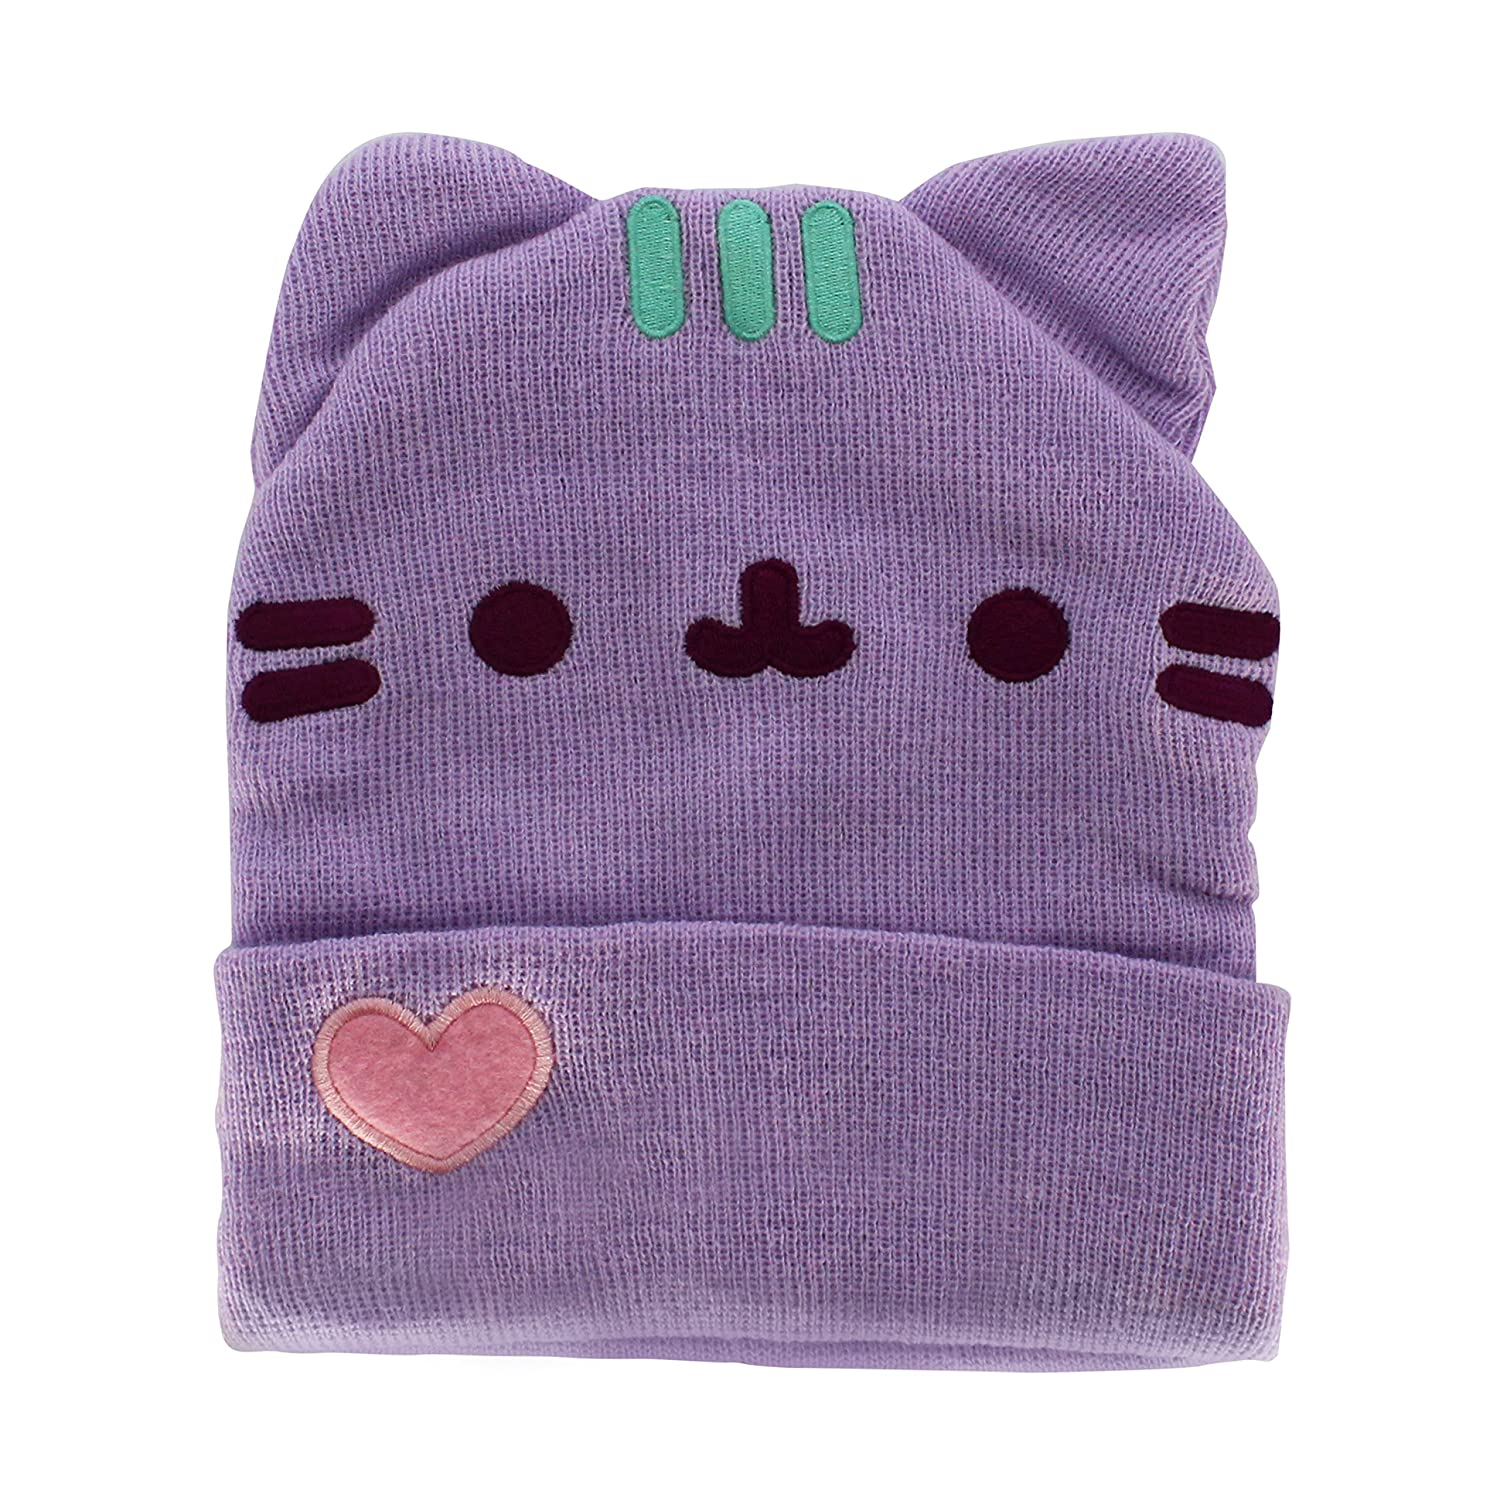 Pusheen Cuffed Beanie With Ears - Purple Pastel With Heart IML PUB141AAOL-ONE